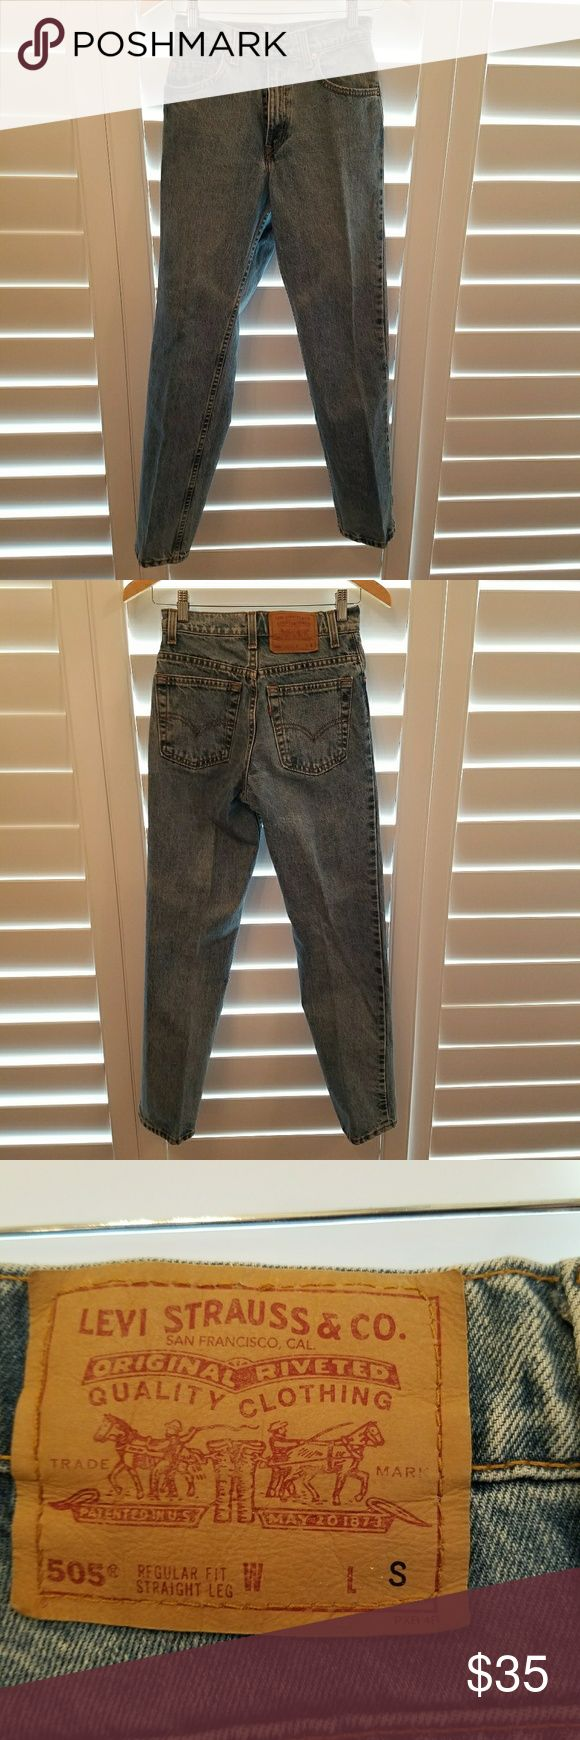 """Vintage Levi's 505 Jeans Vintage classic Levis 505 jeans.  Size 3 short. Regular fit, straight leg.  Inseam 29"""".  Looks like distressed acid wash. Only worn once or twice. In excellent condition. Levi's Jeans Straight Leg"""